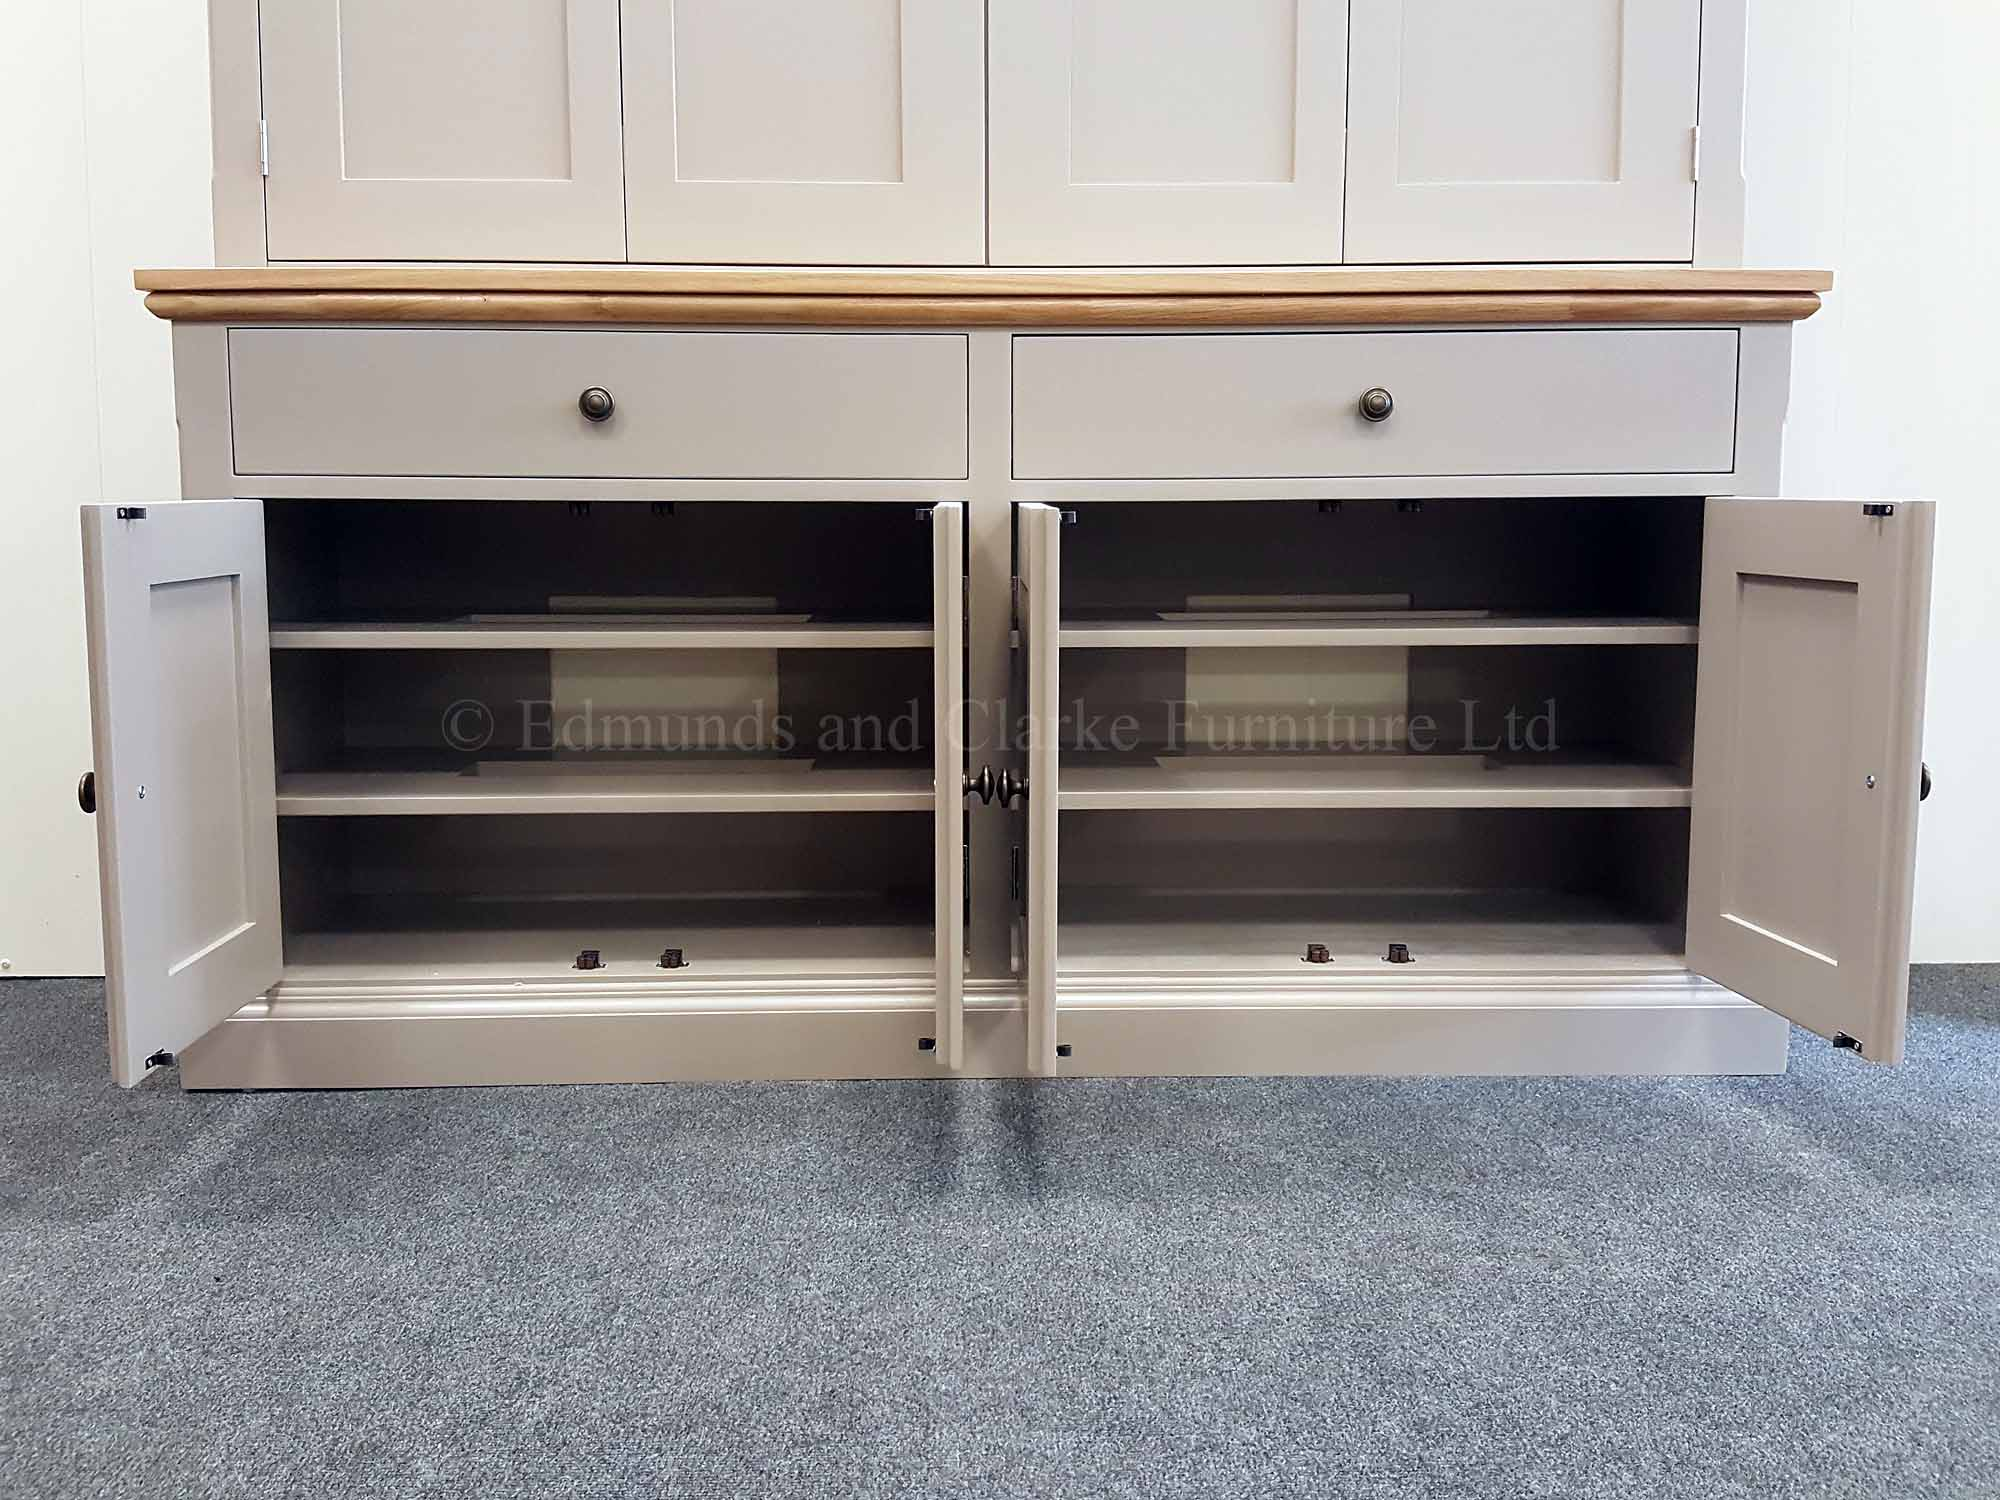 Edmunds television bifold door cupboard with adjustable shelves and drawers